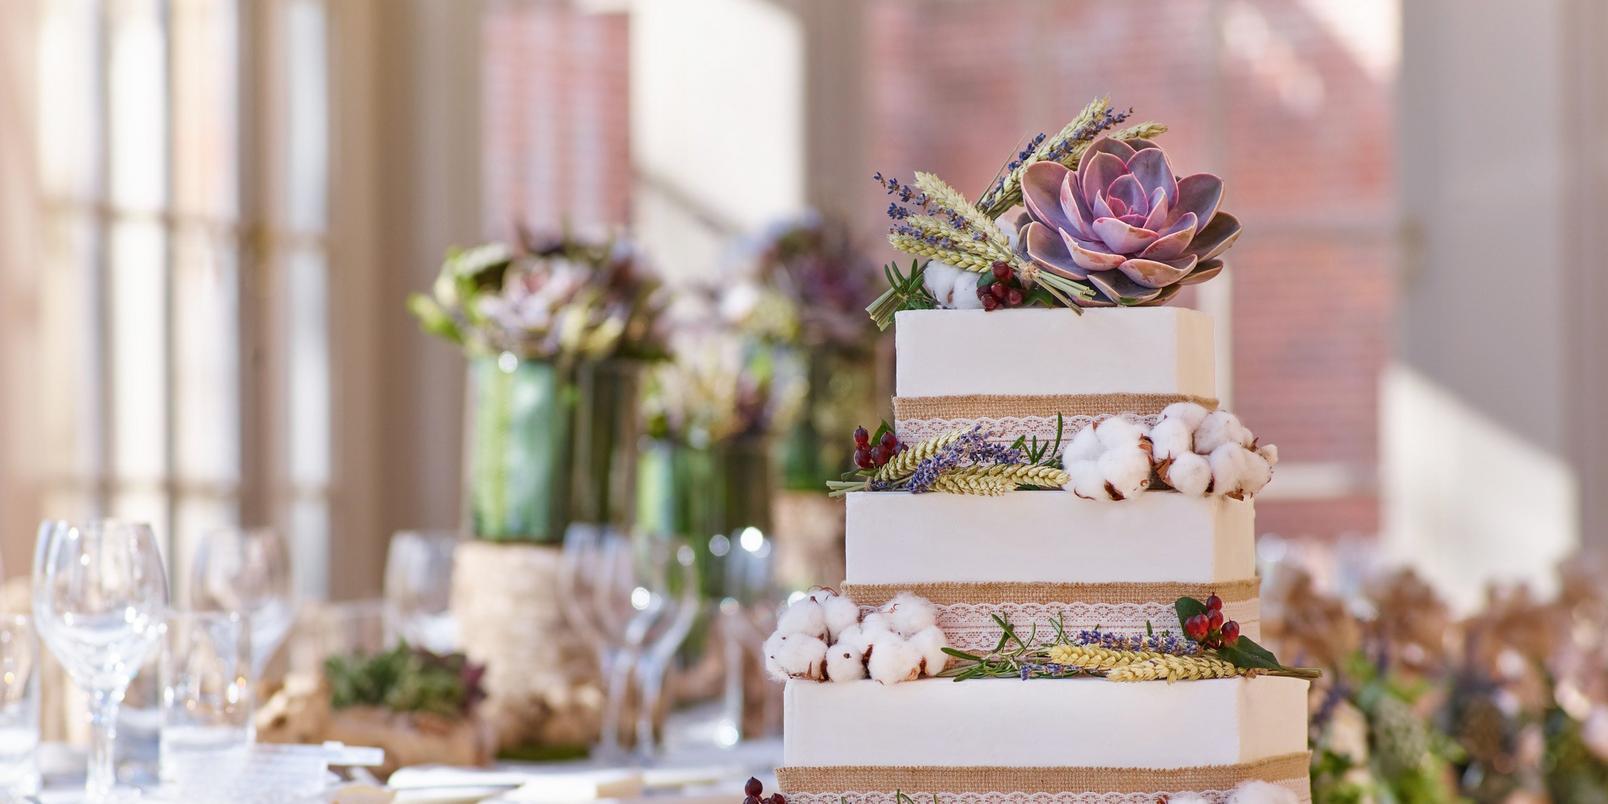 wedding-cake-ideas-with-real-flowers-3